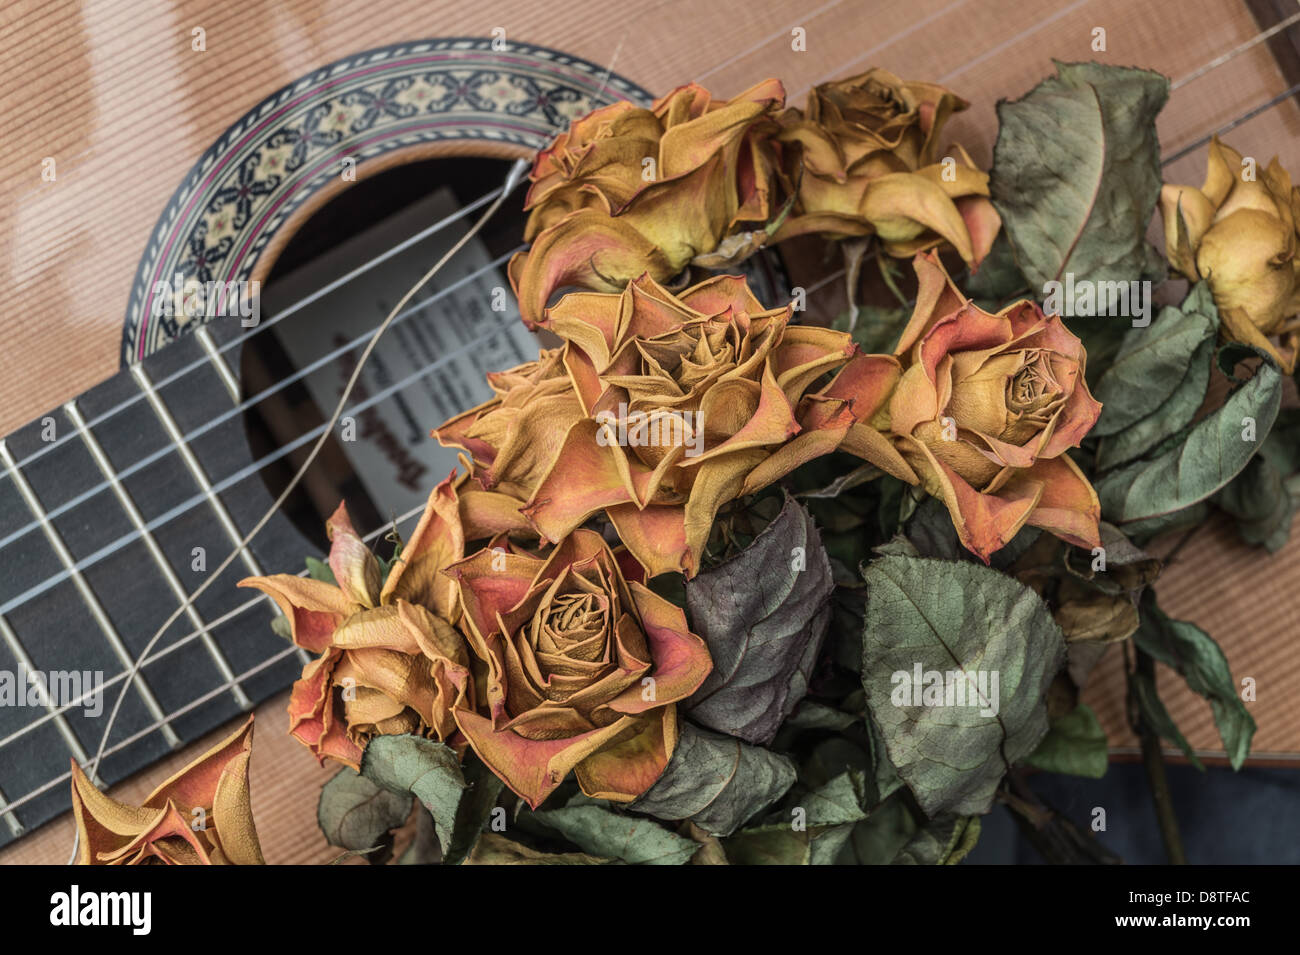 Old roses - faded, dried yellow roses on a Spanish guitar with a broken string. - Stock Image